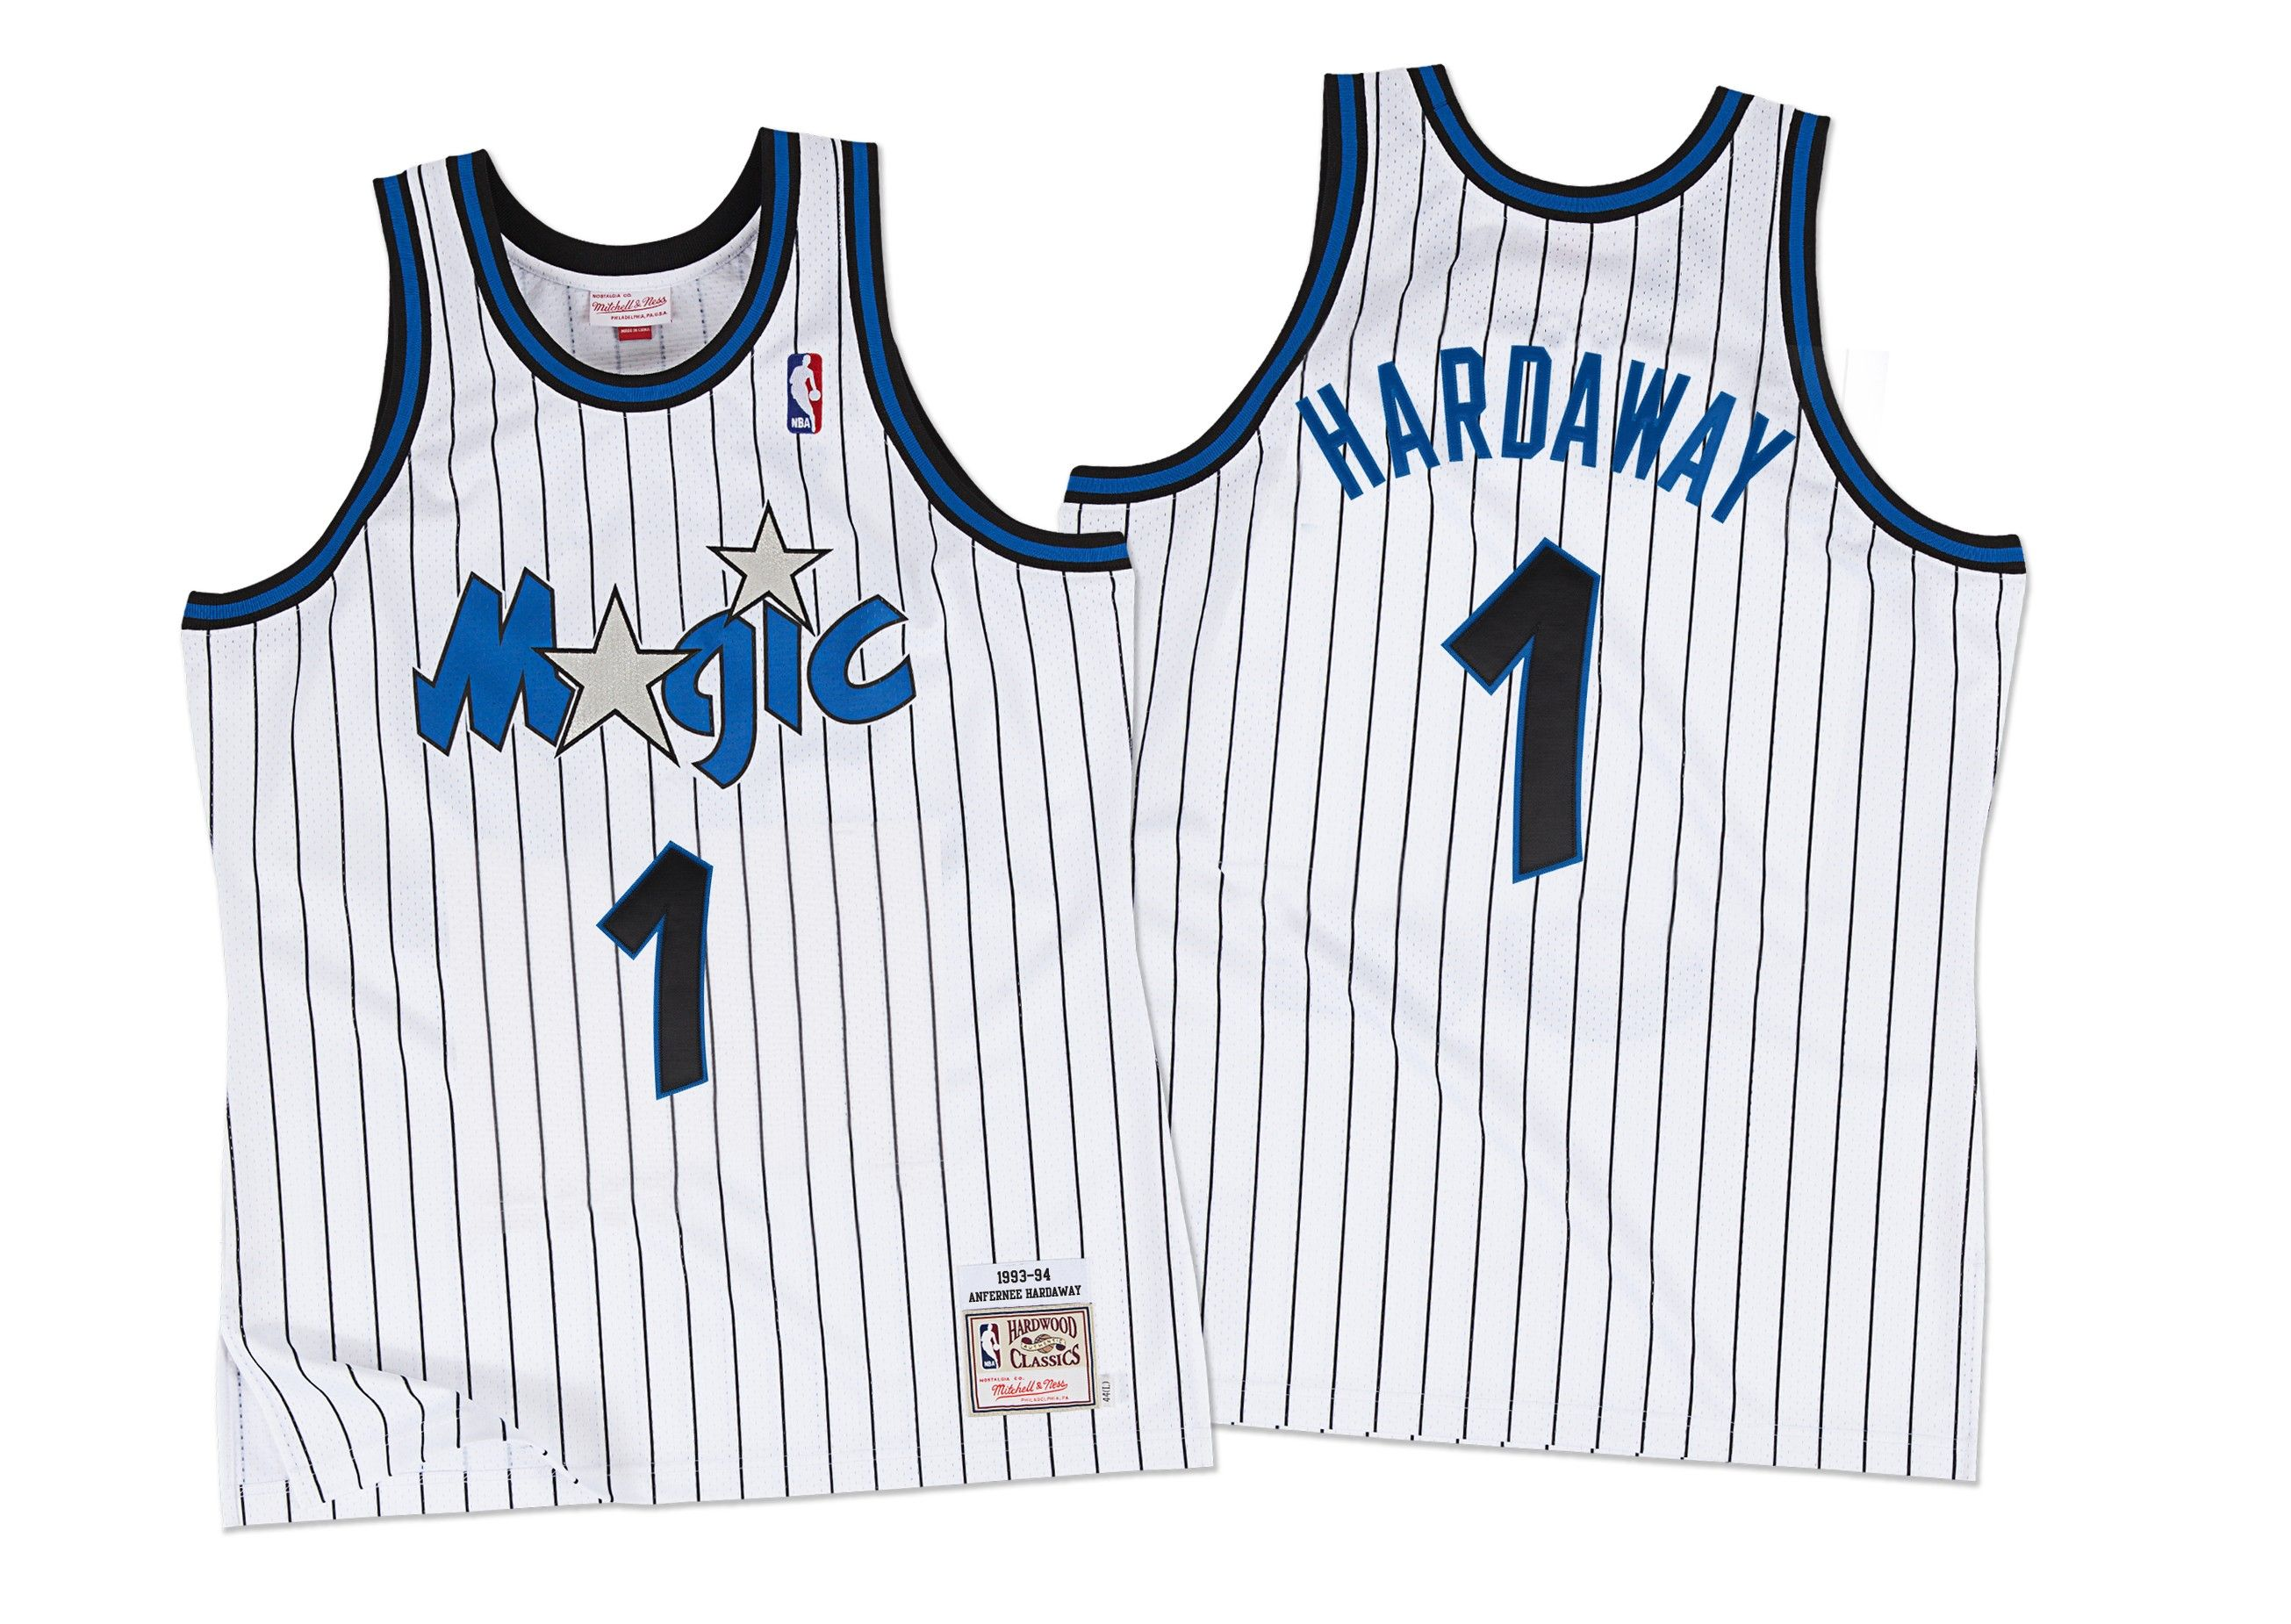 finest selection 46ef7 b62a4 Penny Hardaway 1993-94 Authentic Jersey Orlando Magic ...